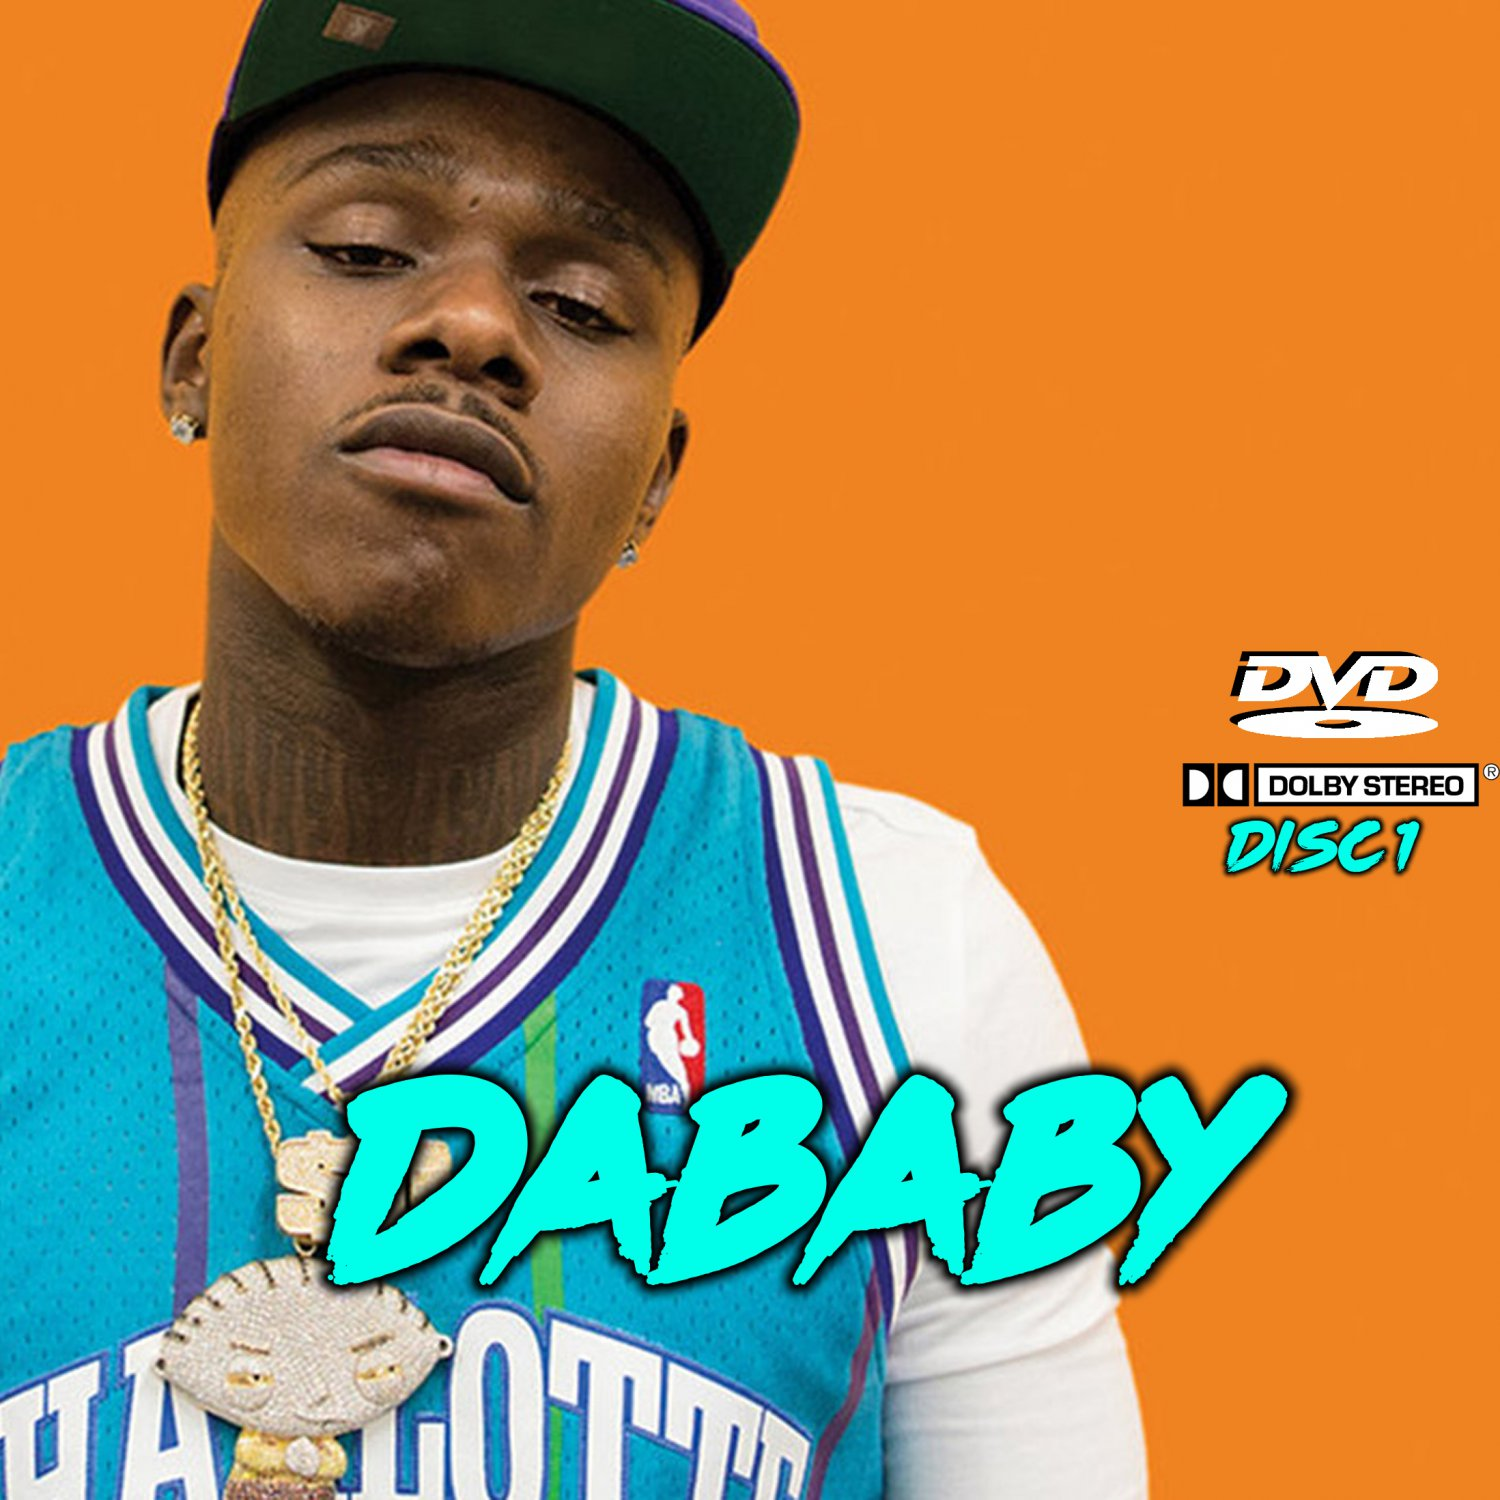 DaBaby Music Videos Collection Da Baby (5 DVD's) 108 Music Videos